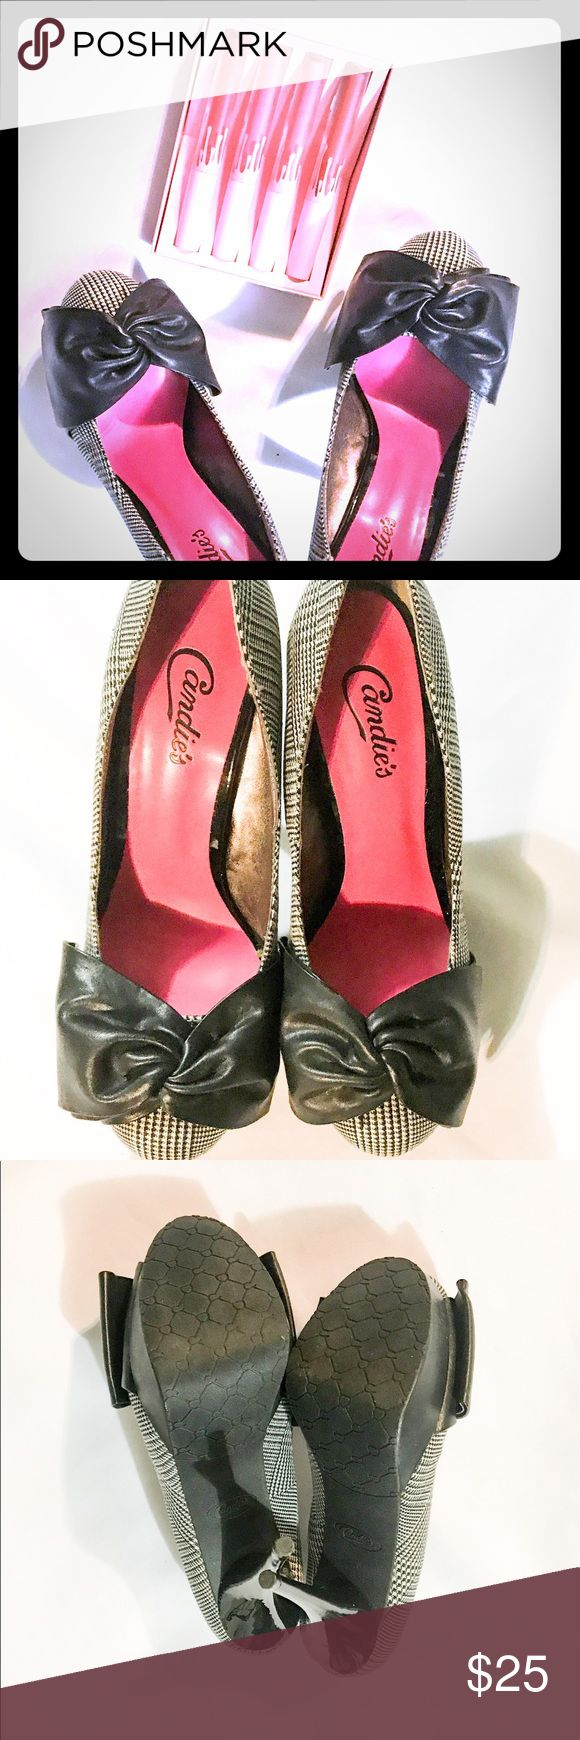 Candies Black and White Faux Leather Bow High Heel - 25+ Best Ideas About Black And White High Heels On Pinterest